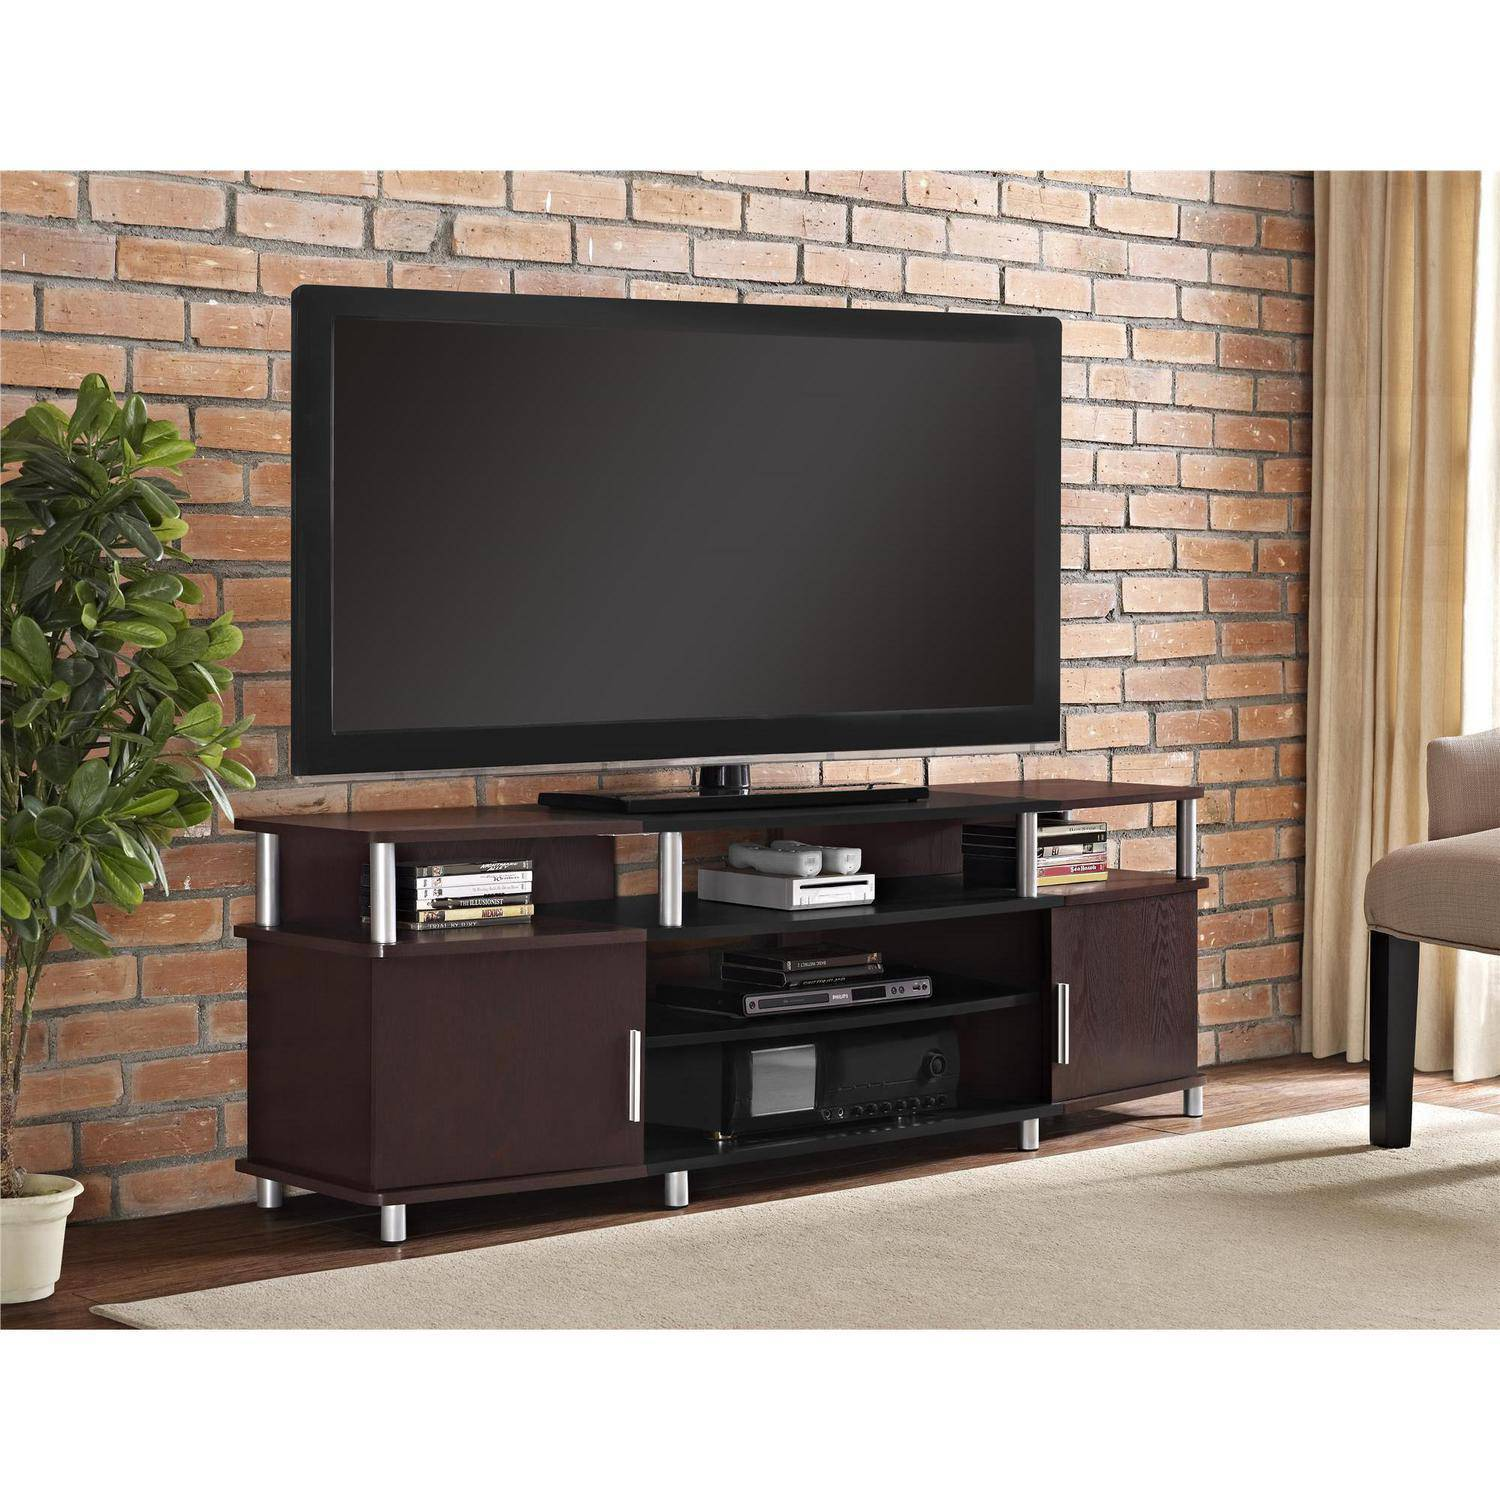 "Ameriwood Home Carson TV Stand for TVs up to 70"", Multiple Colors"